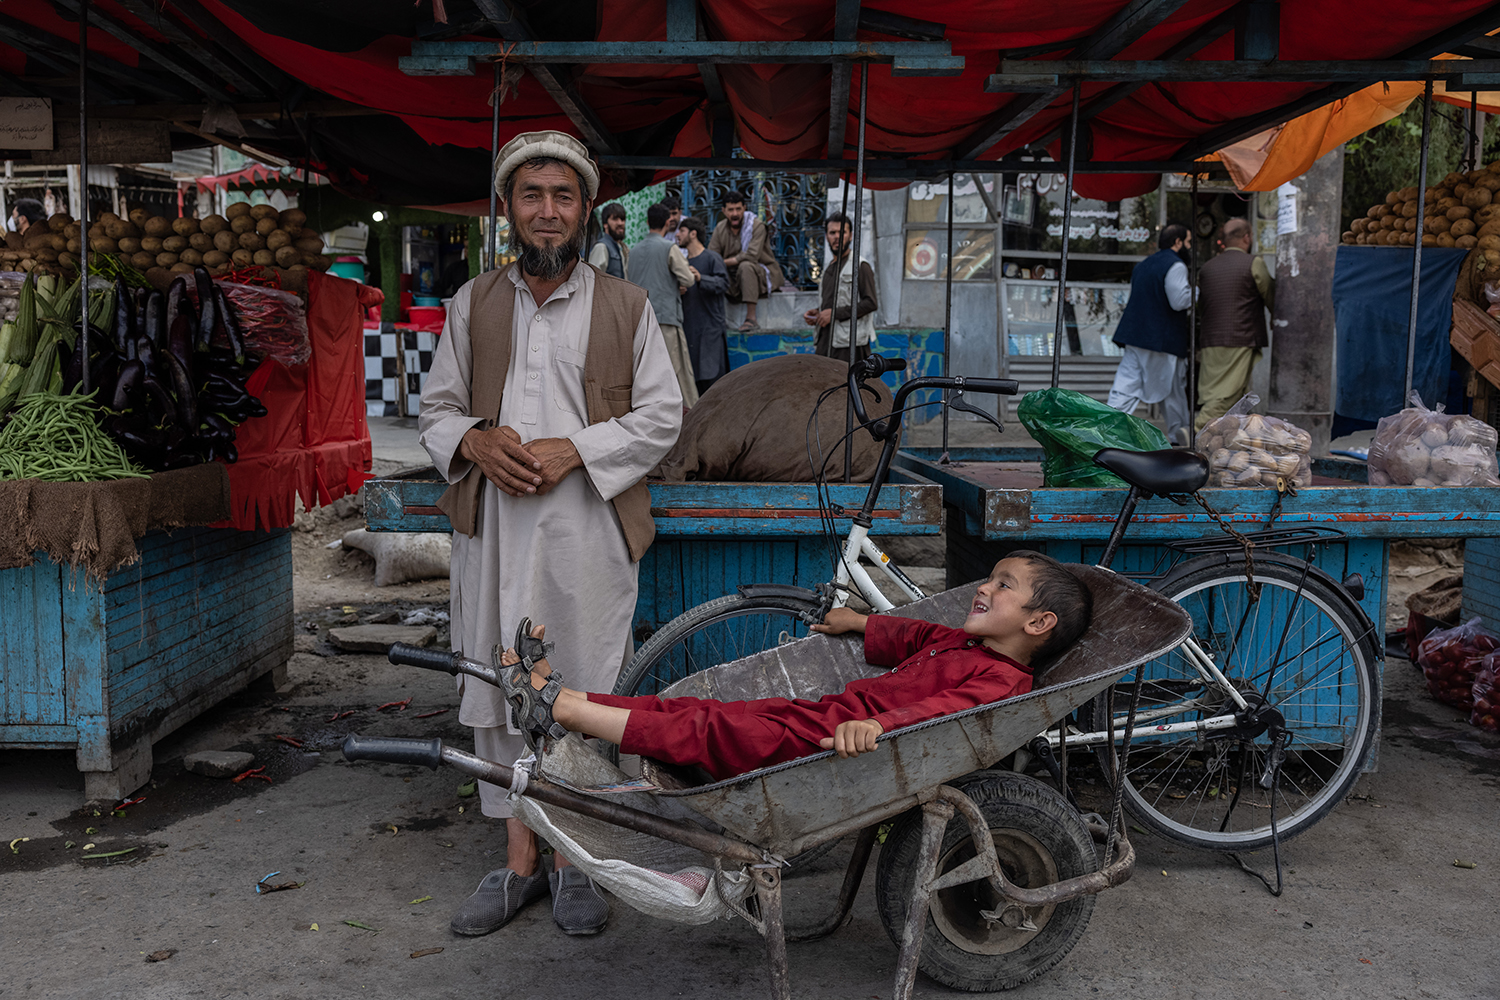 A father and son at the market in Kabul.